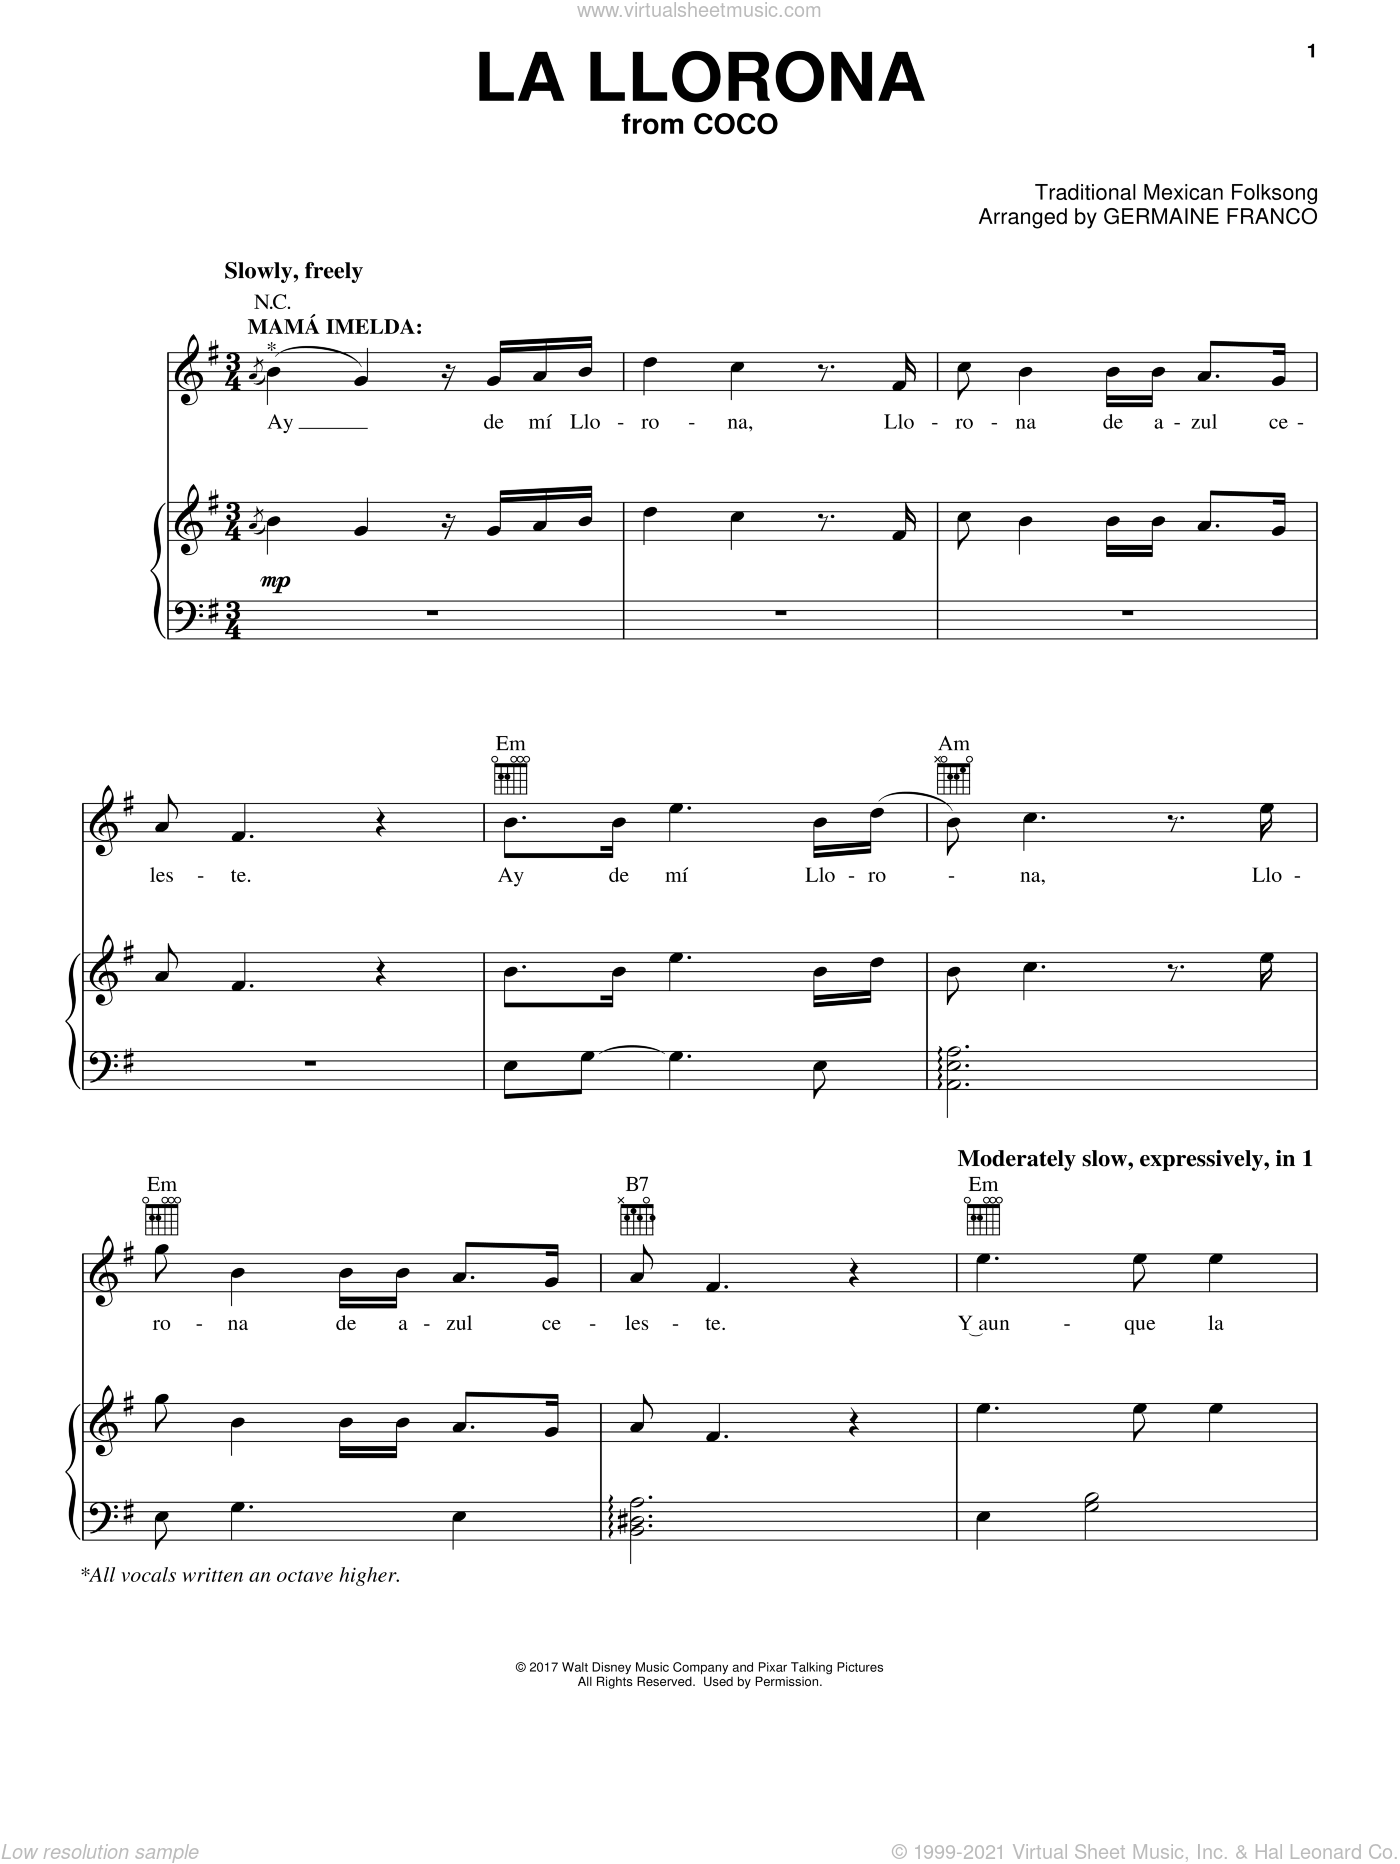 La Llorona (from Coco) sheet music for voice, piano or guitar by Germaine Franco, Coco (Movie) and Traditional Mexican Folksong, intermediate skill level